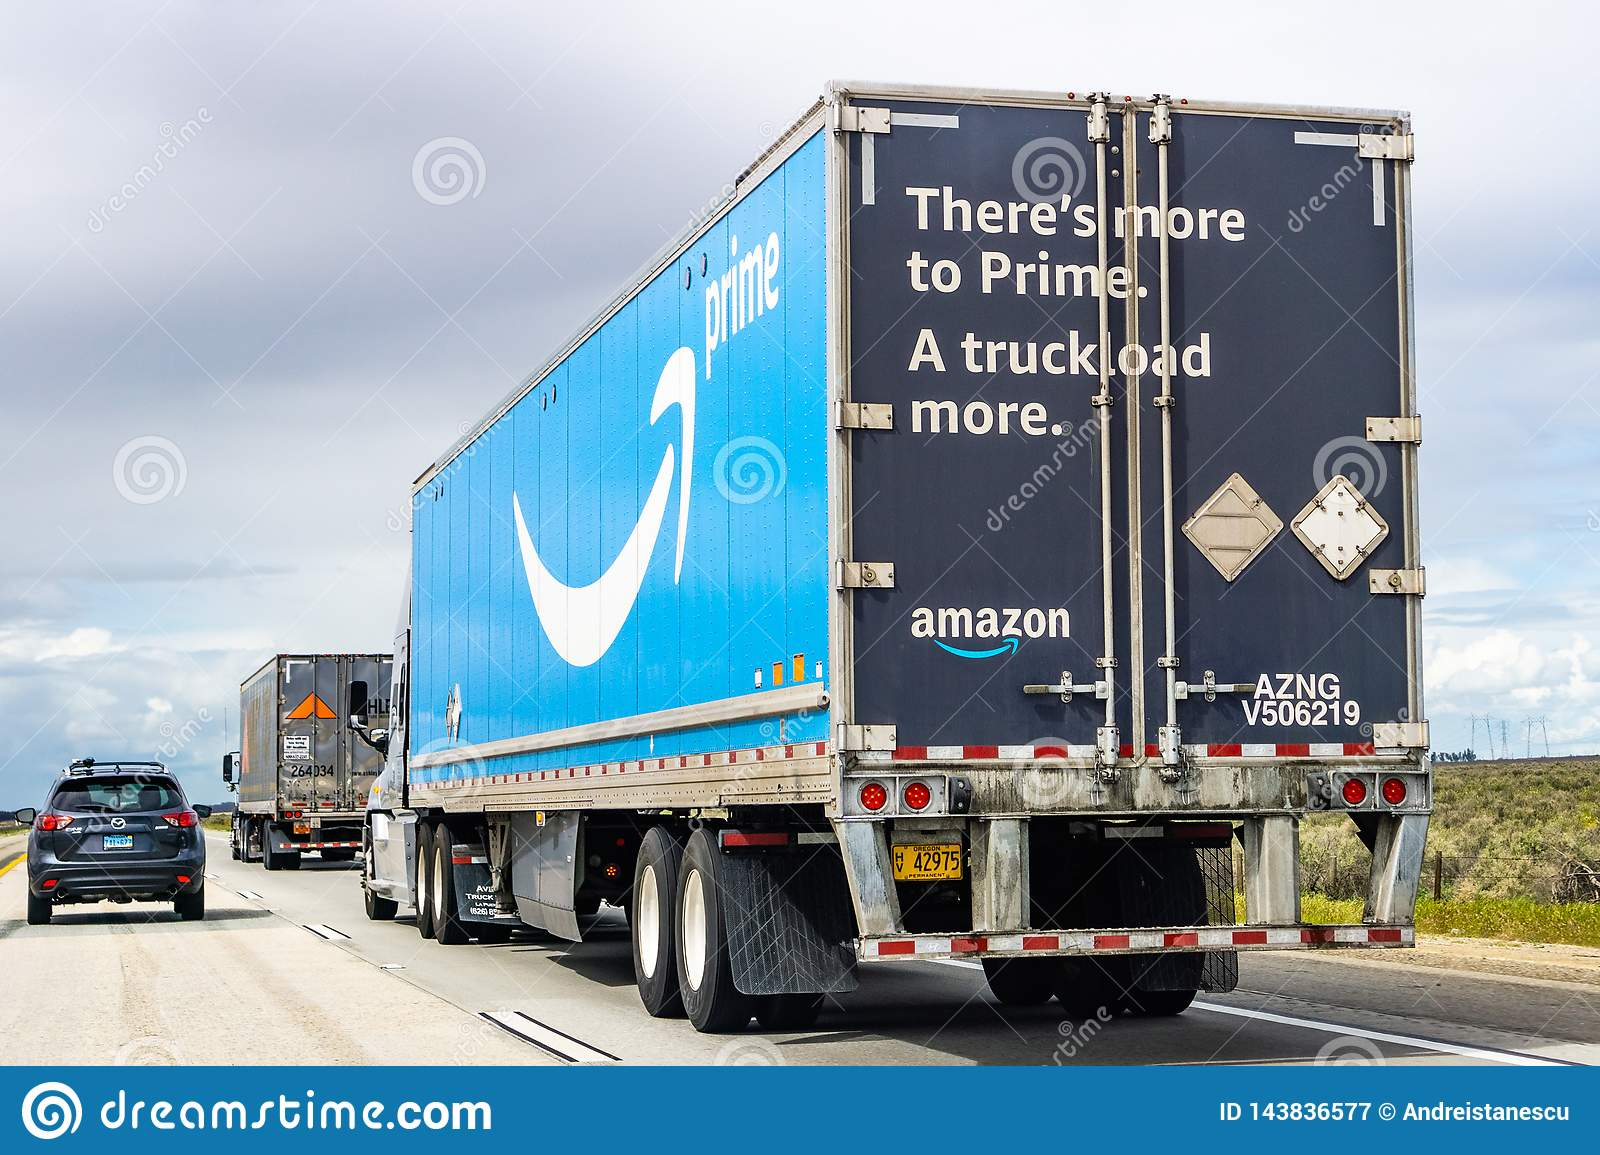 March 20, 2019 Los Angeles / CA / USA - Amazon truck driving on the interstate, the large Prime logo printed on the side